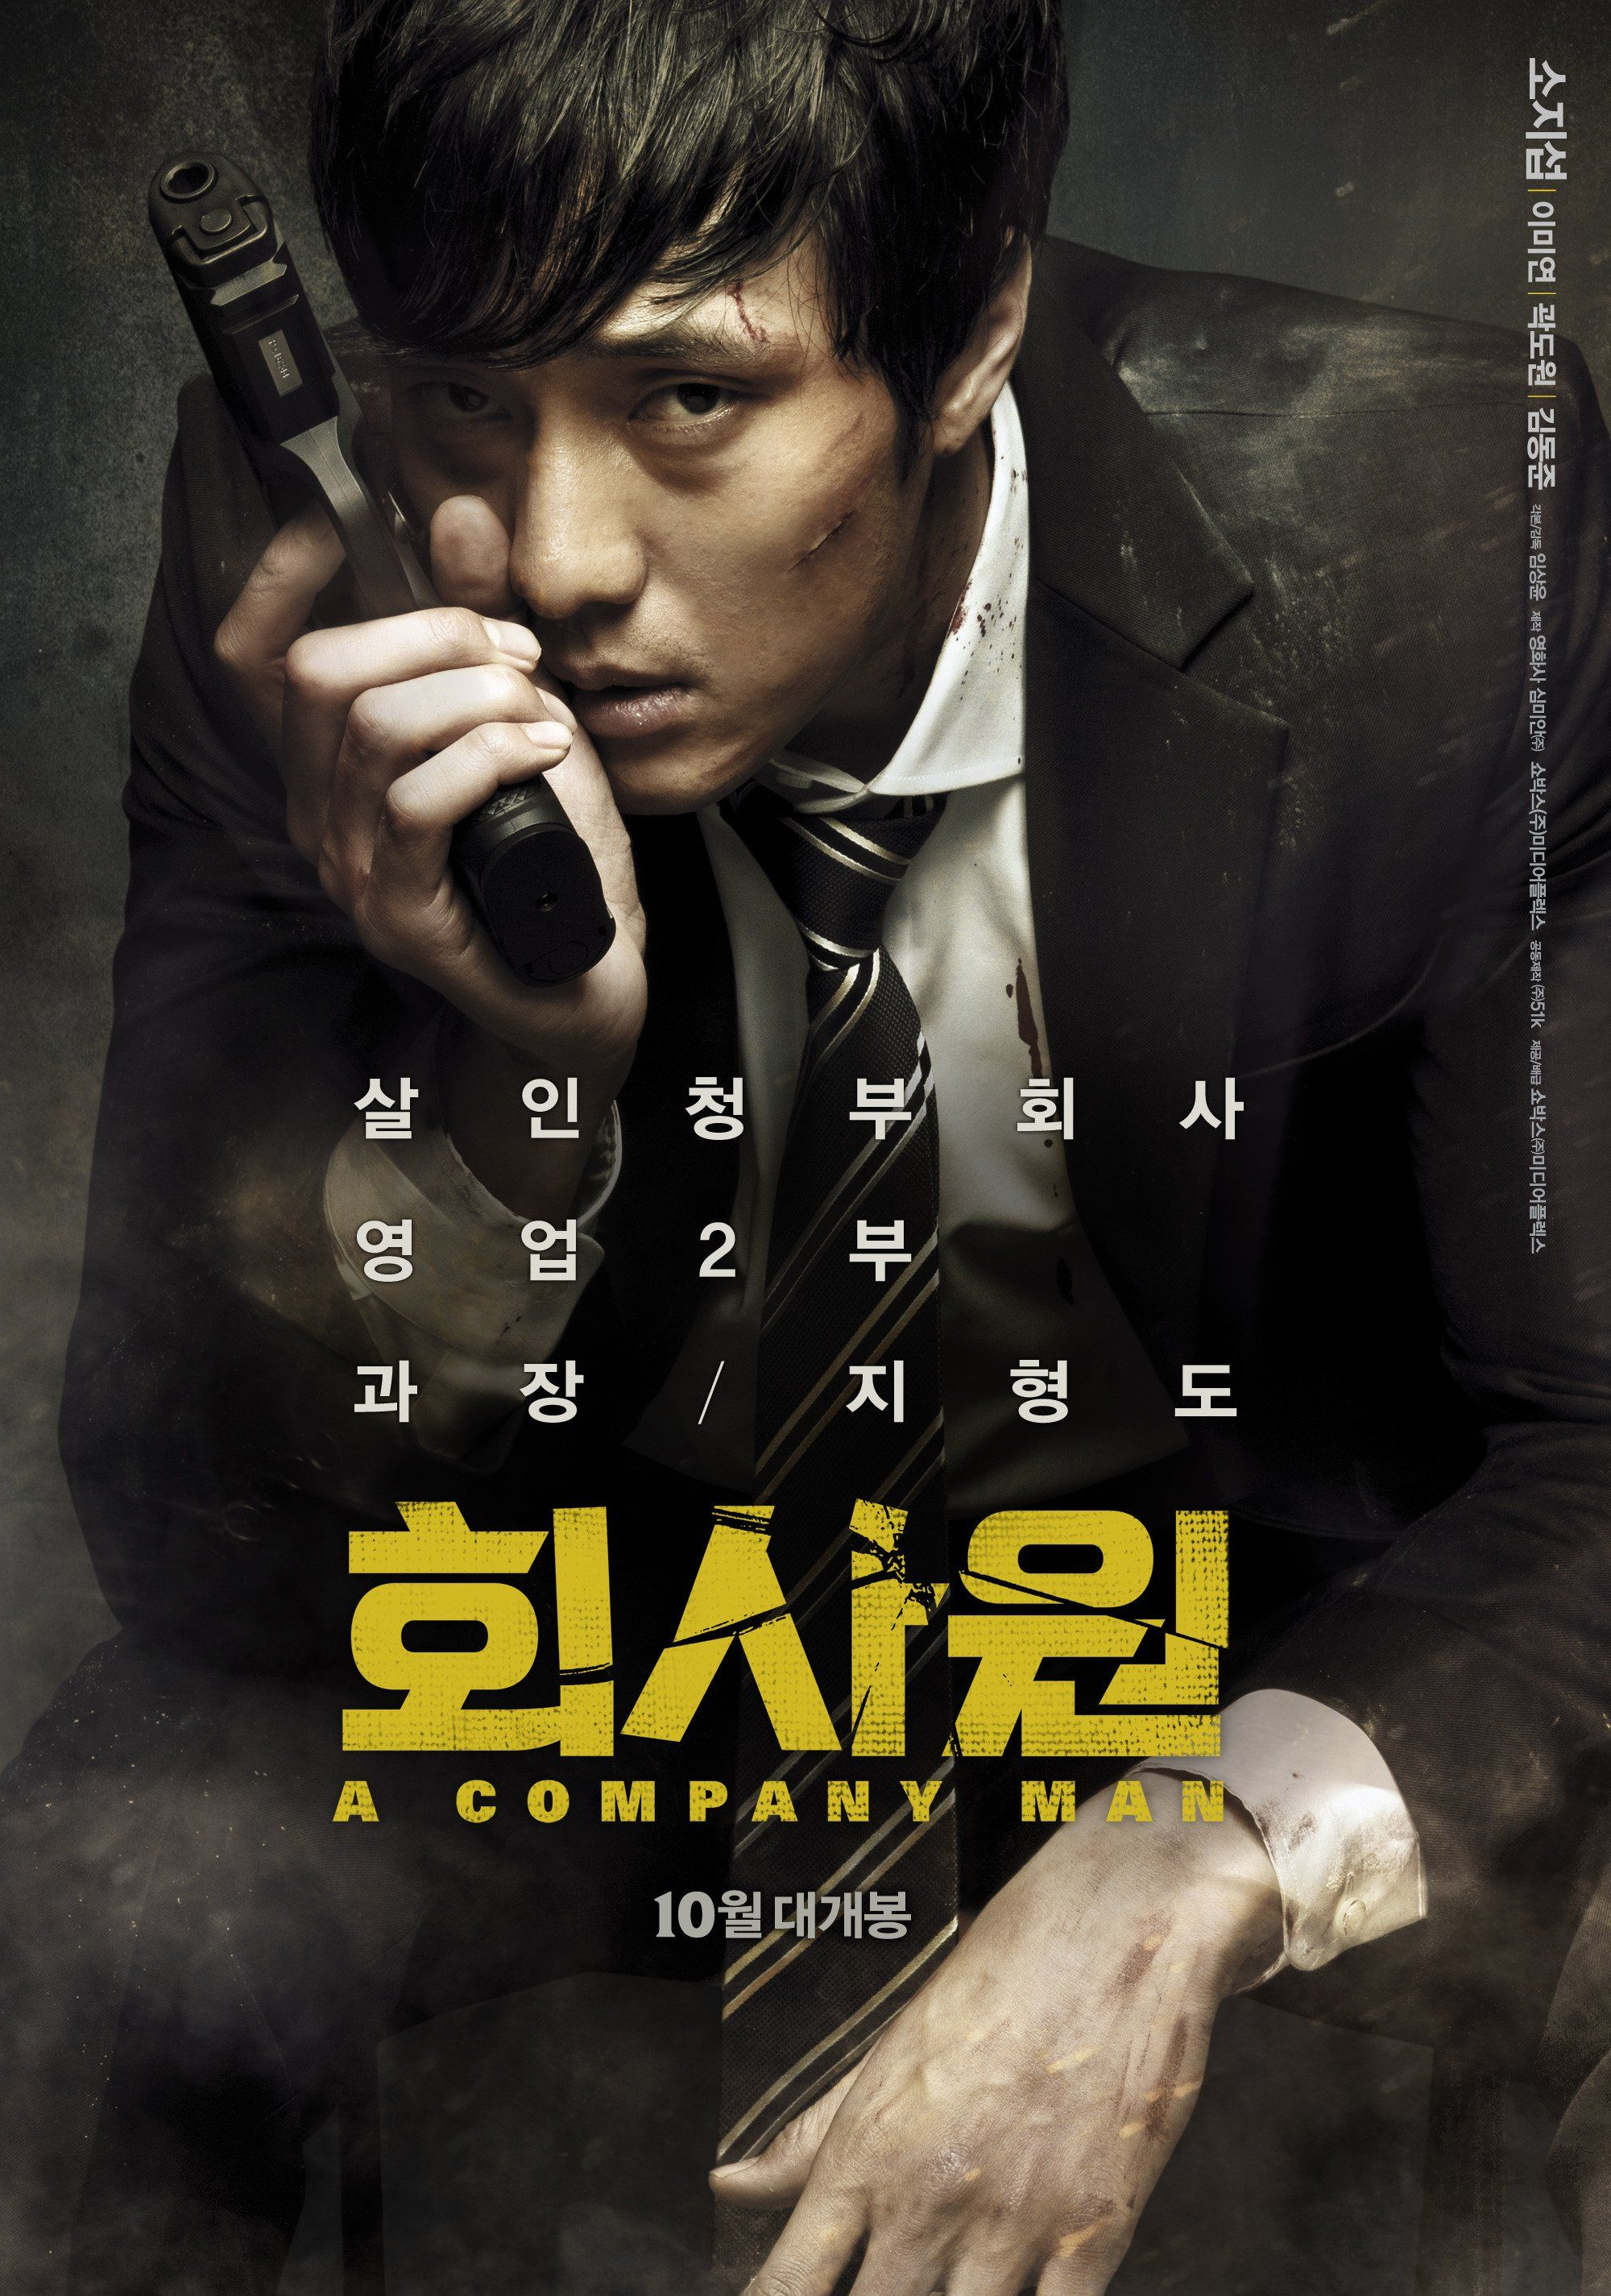 """REVIEW: Korean movie """"Company Man"""" starring So Ji-sub. Action and tragedy follow the story of an assassin who tries to leave the company that treats violence as 'business as usual.' So Ji-sub gives an understated but compelling performance ~ s.e.t."""